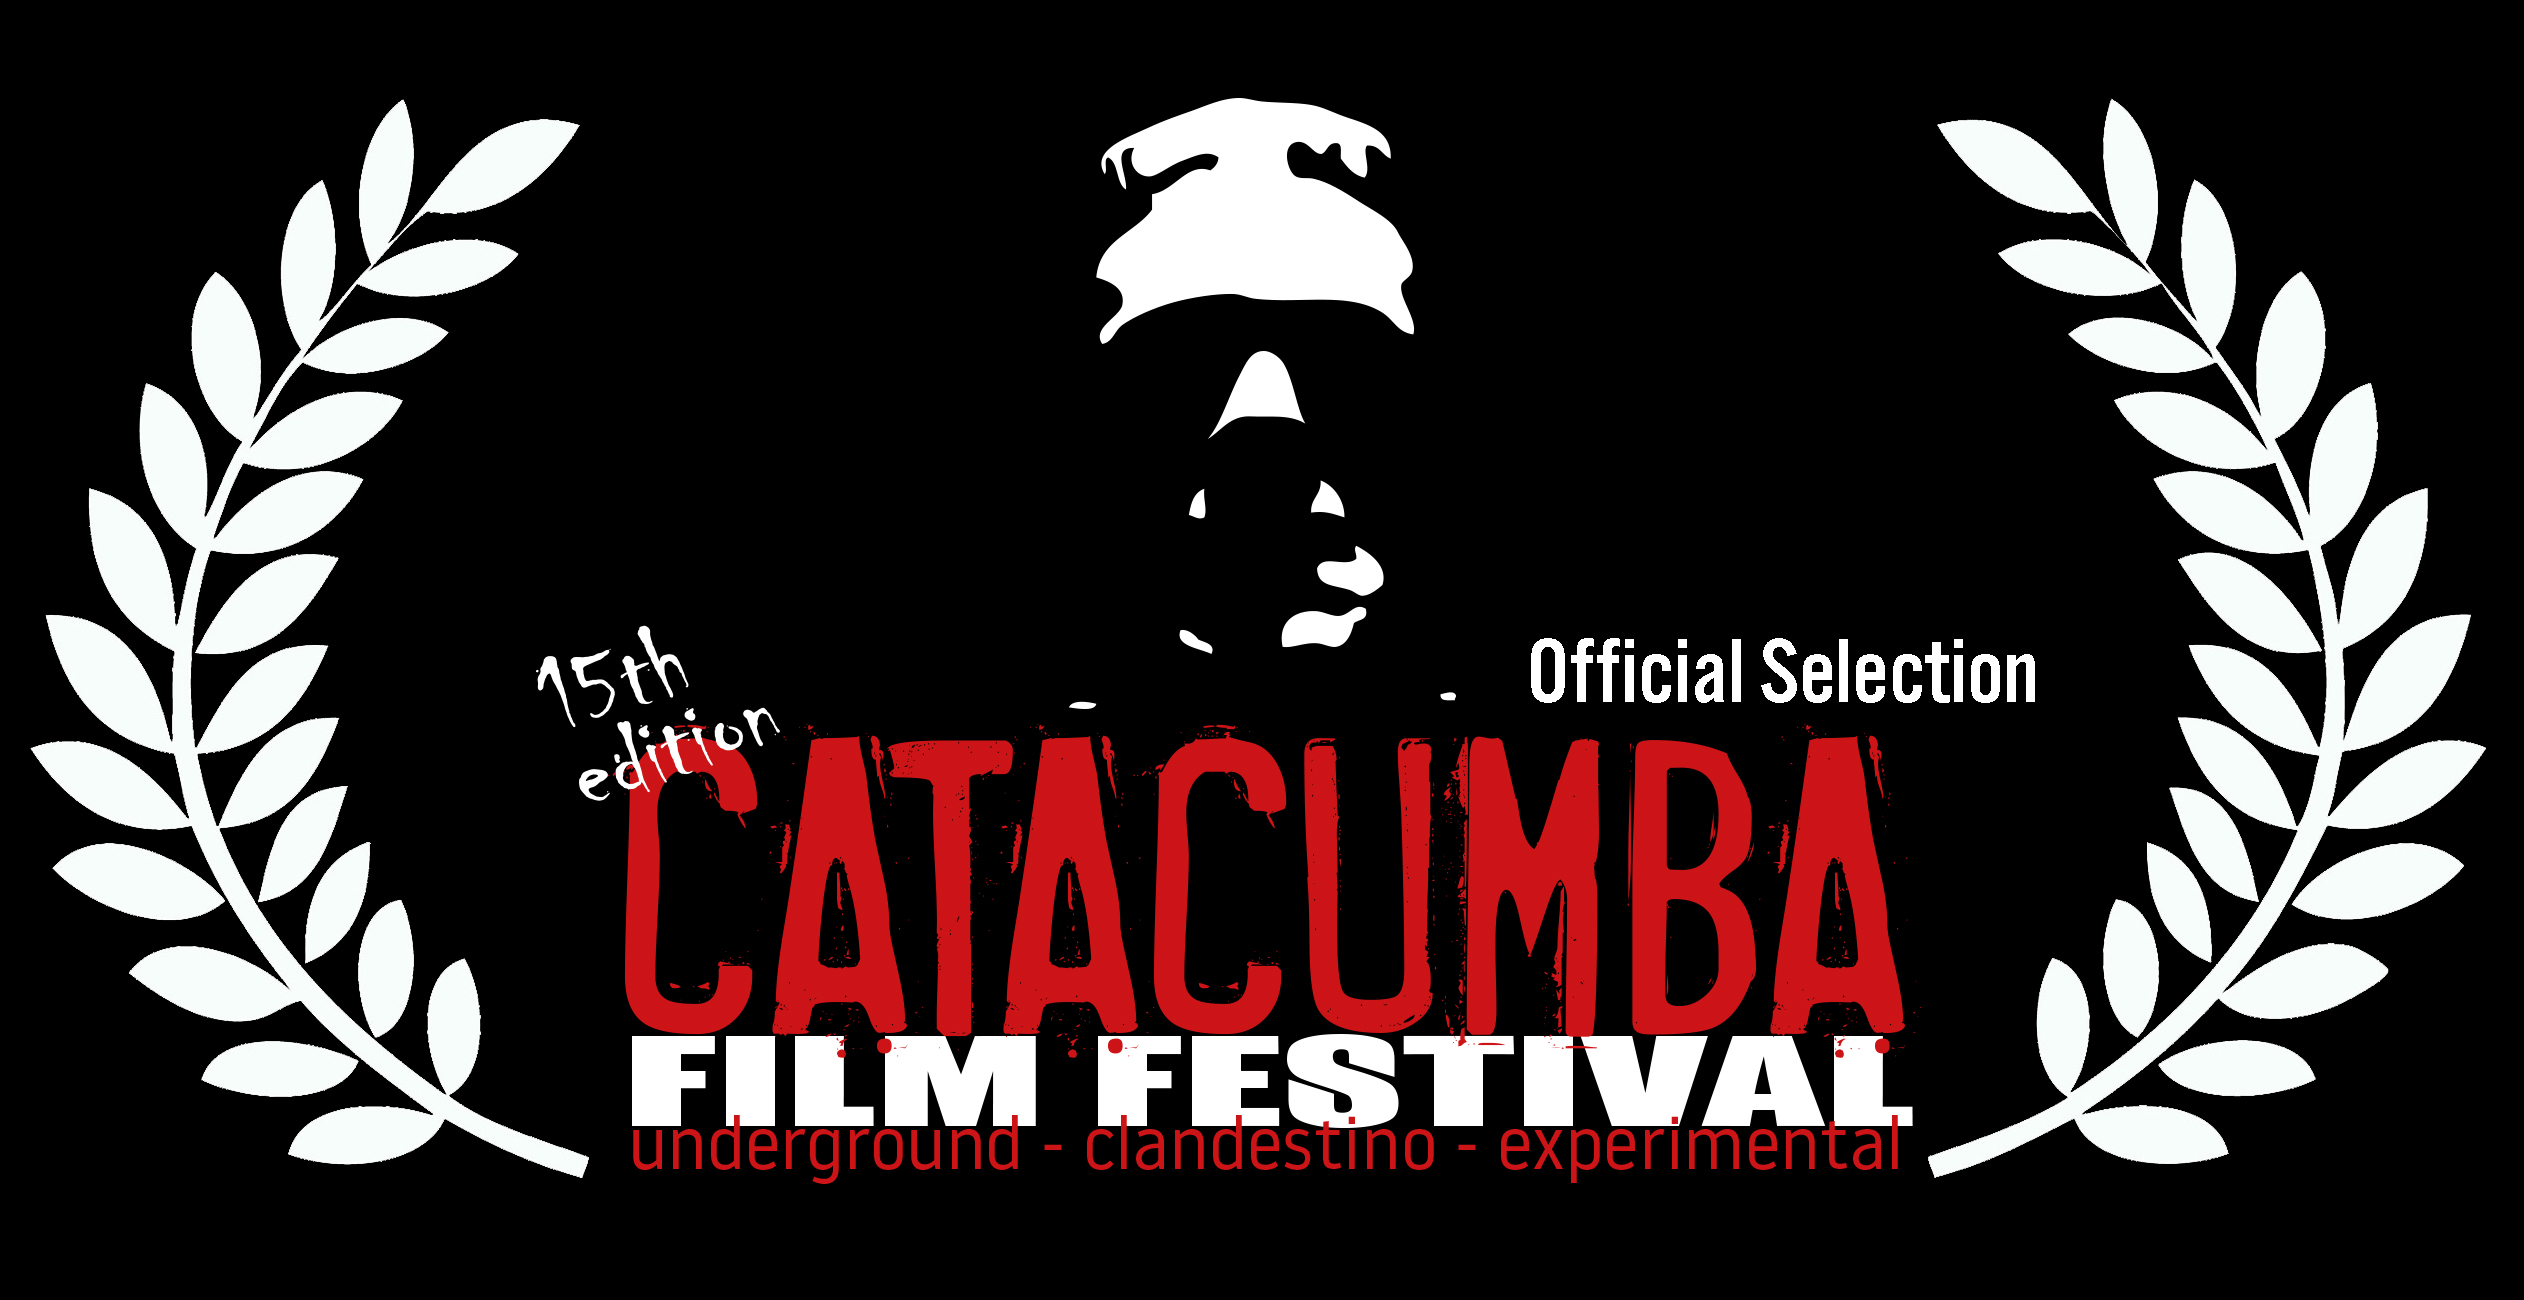 15thCatacumba_Official_2017